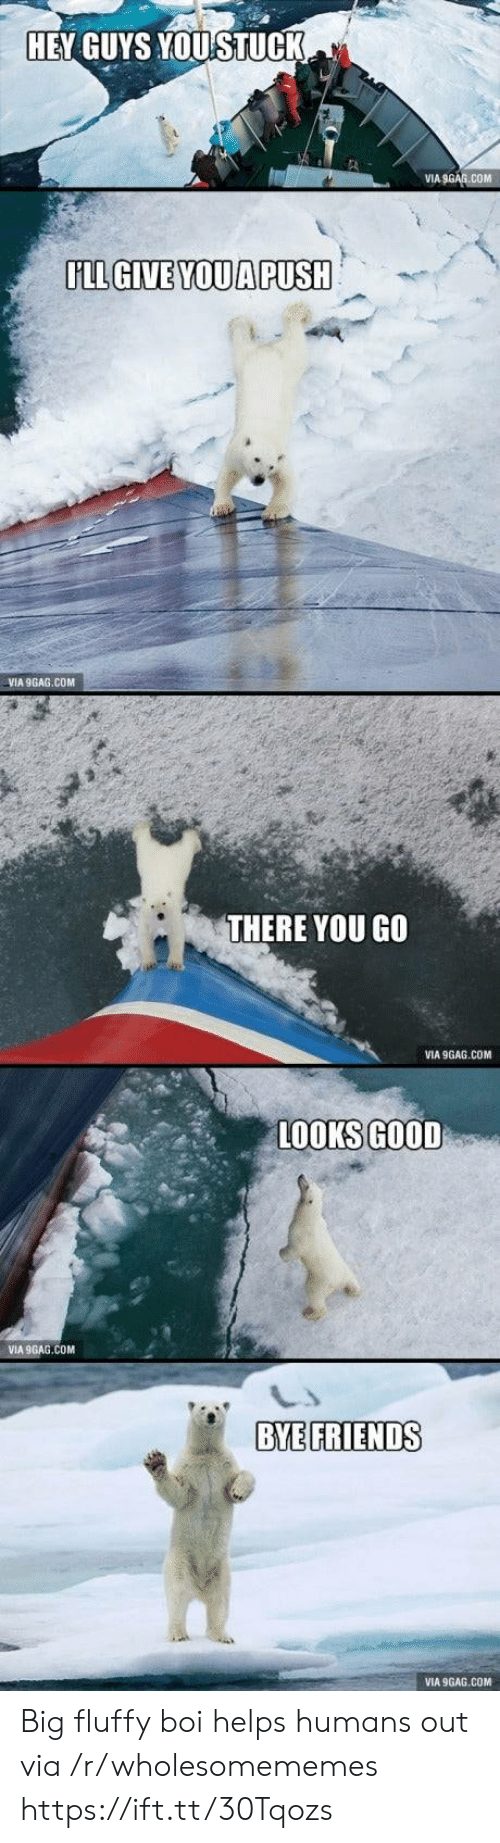 Looks Good: HEY GUYS YOUSTUCK  VIA 9GAG.COM  LL GIVE YOUA PUSH  VIA 9GAG.COM  THERE YOU GO  VIA 9GAG.COM  LOOKS GOOD  VIA 9GAG.COM  BYE FRIENDS  VIA 9GAG.COM Big fluffy boi helps humans out via /r/wholesomememes https://ift.tt/30Tqozs